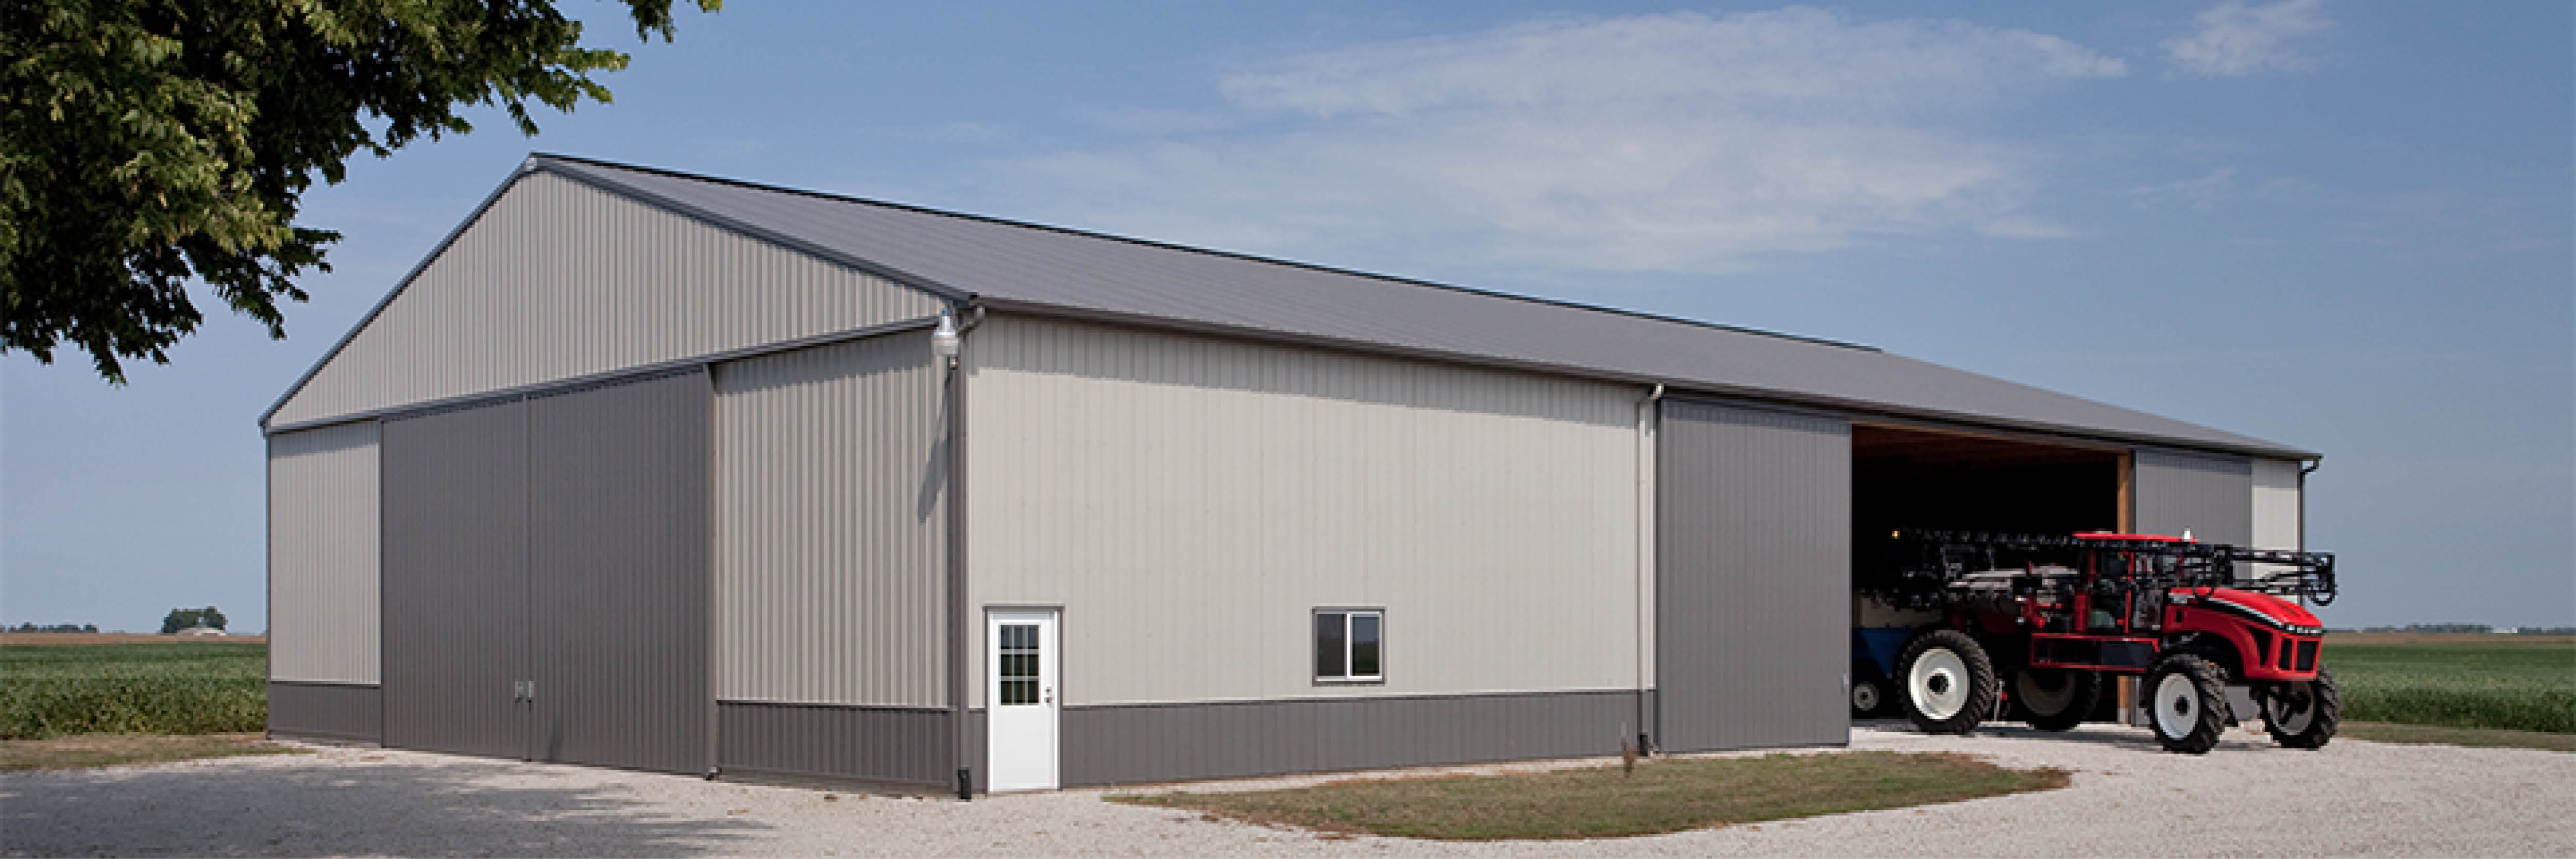 Who Are the Top Pole Barn Builders in Iowa?